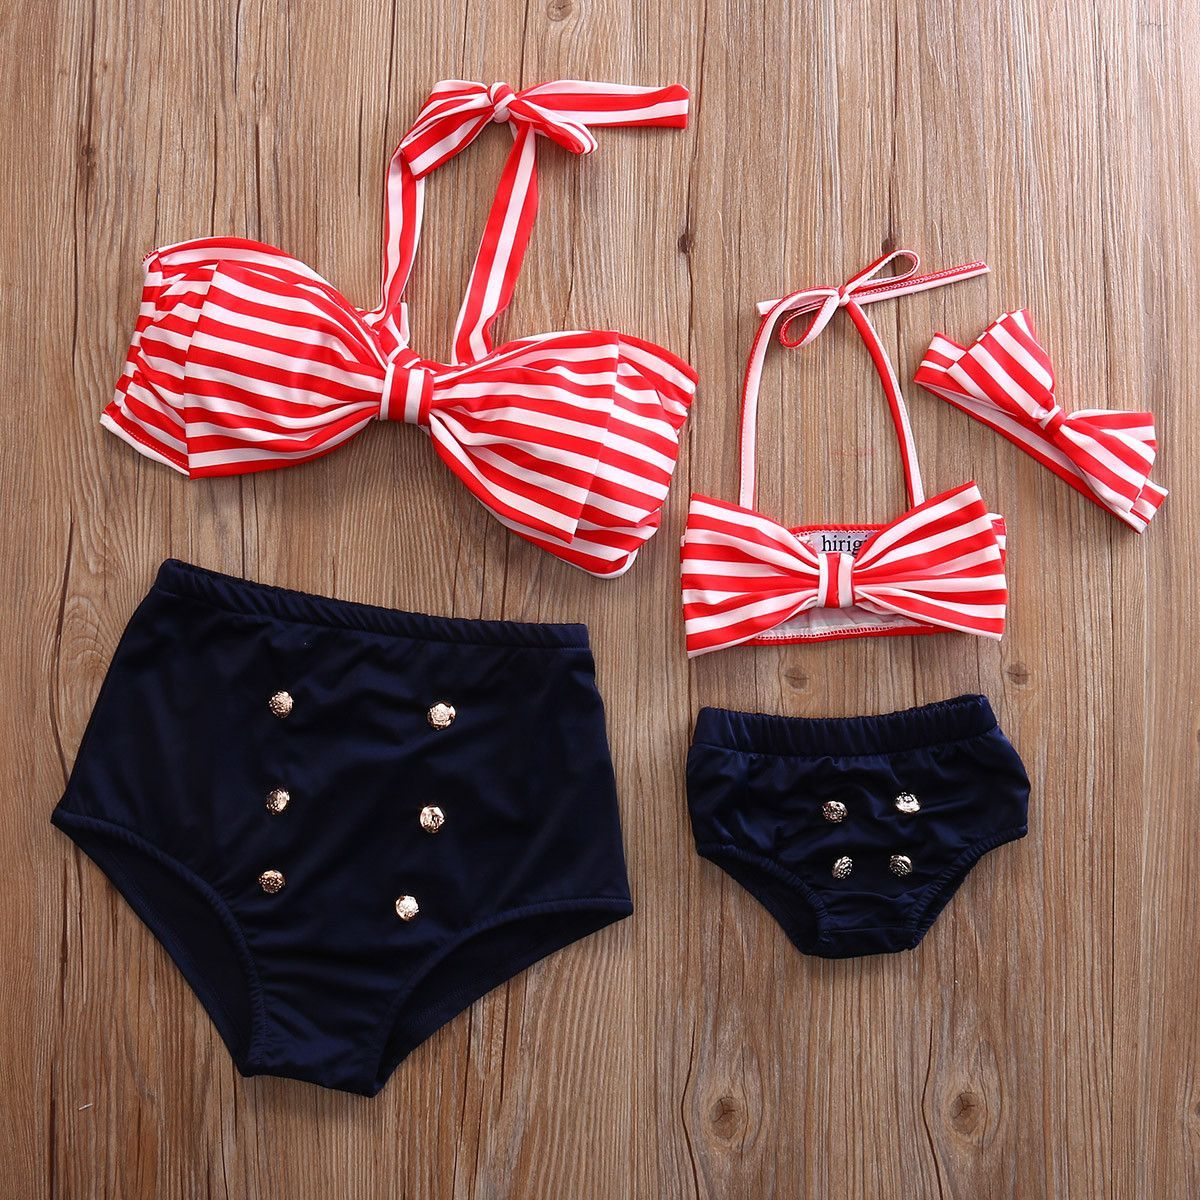 e69d5d3ba5a Mom and me matching two piece Bikini Swimsuit / High waist nautical set / Mom  and me Sailor Twins / Mommy and Daughter Style Swimwear Bathingsuit